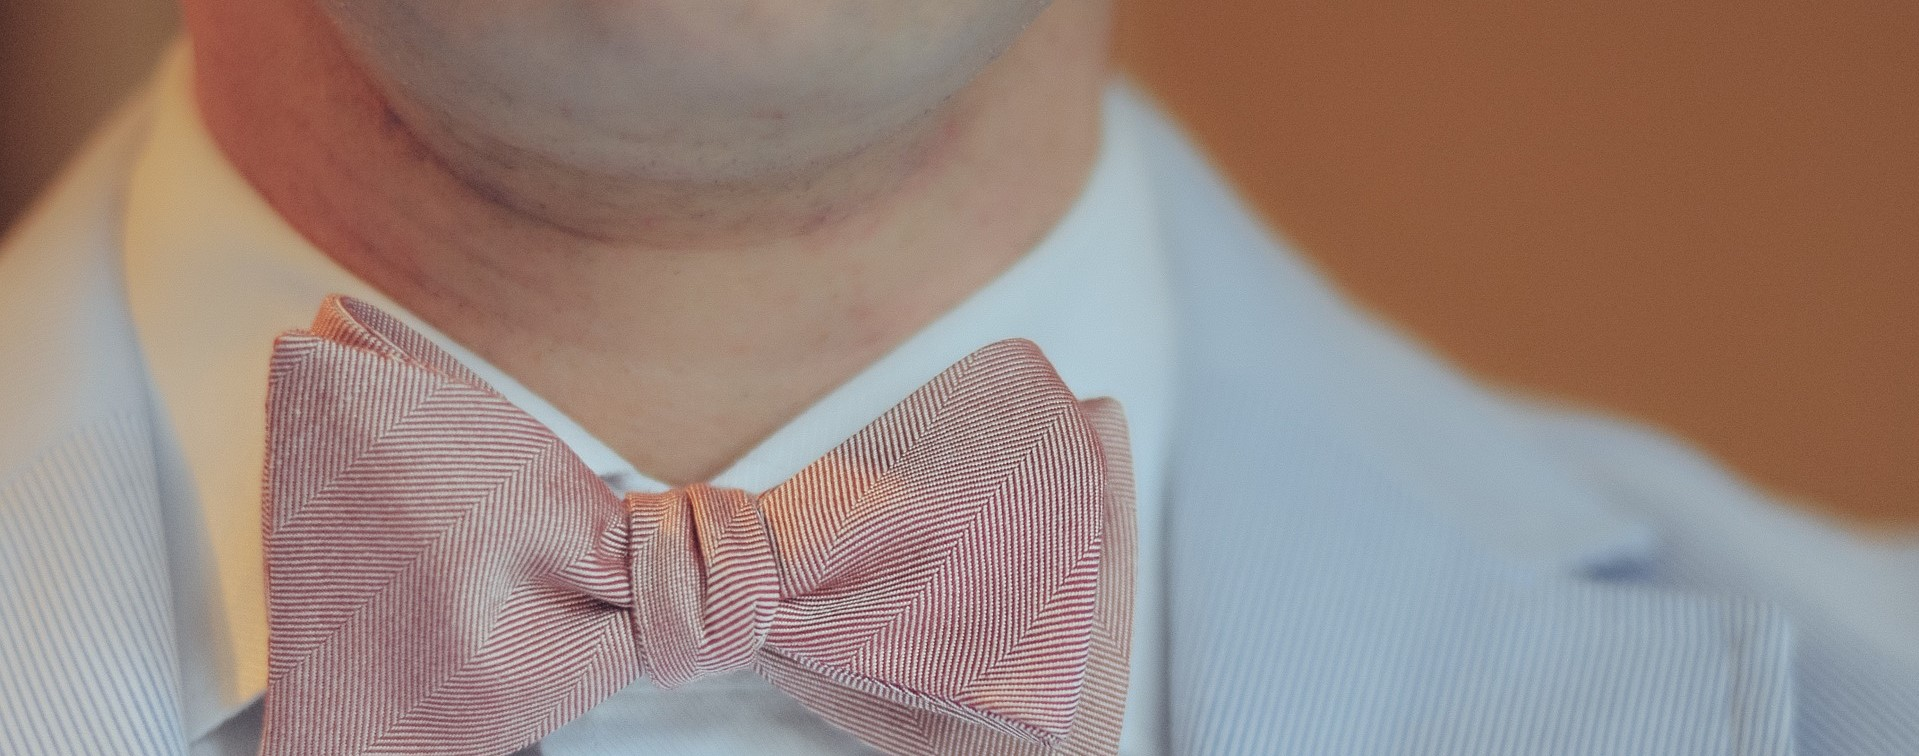 Man on a Pink Tie | Breast Cancer Car Donations